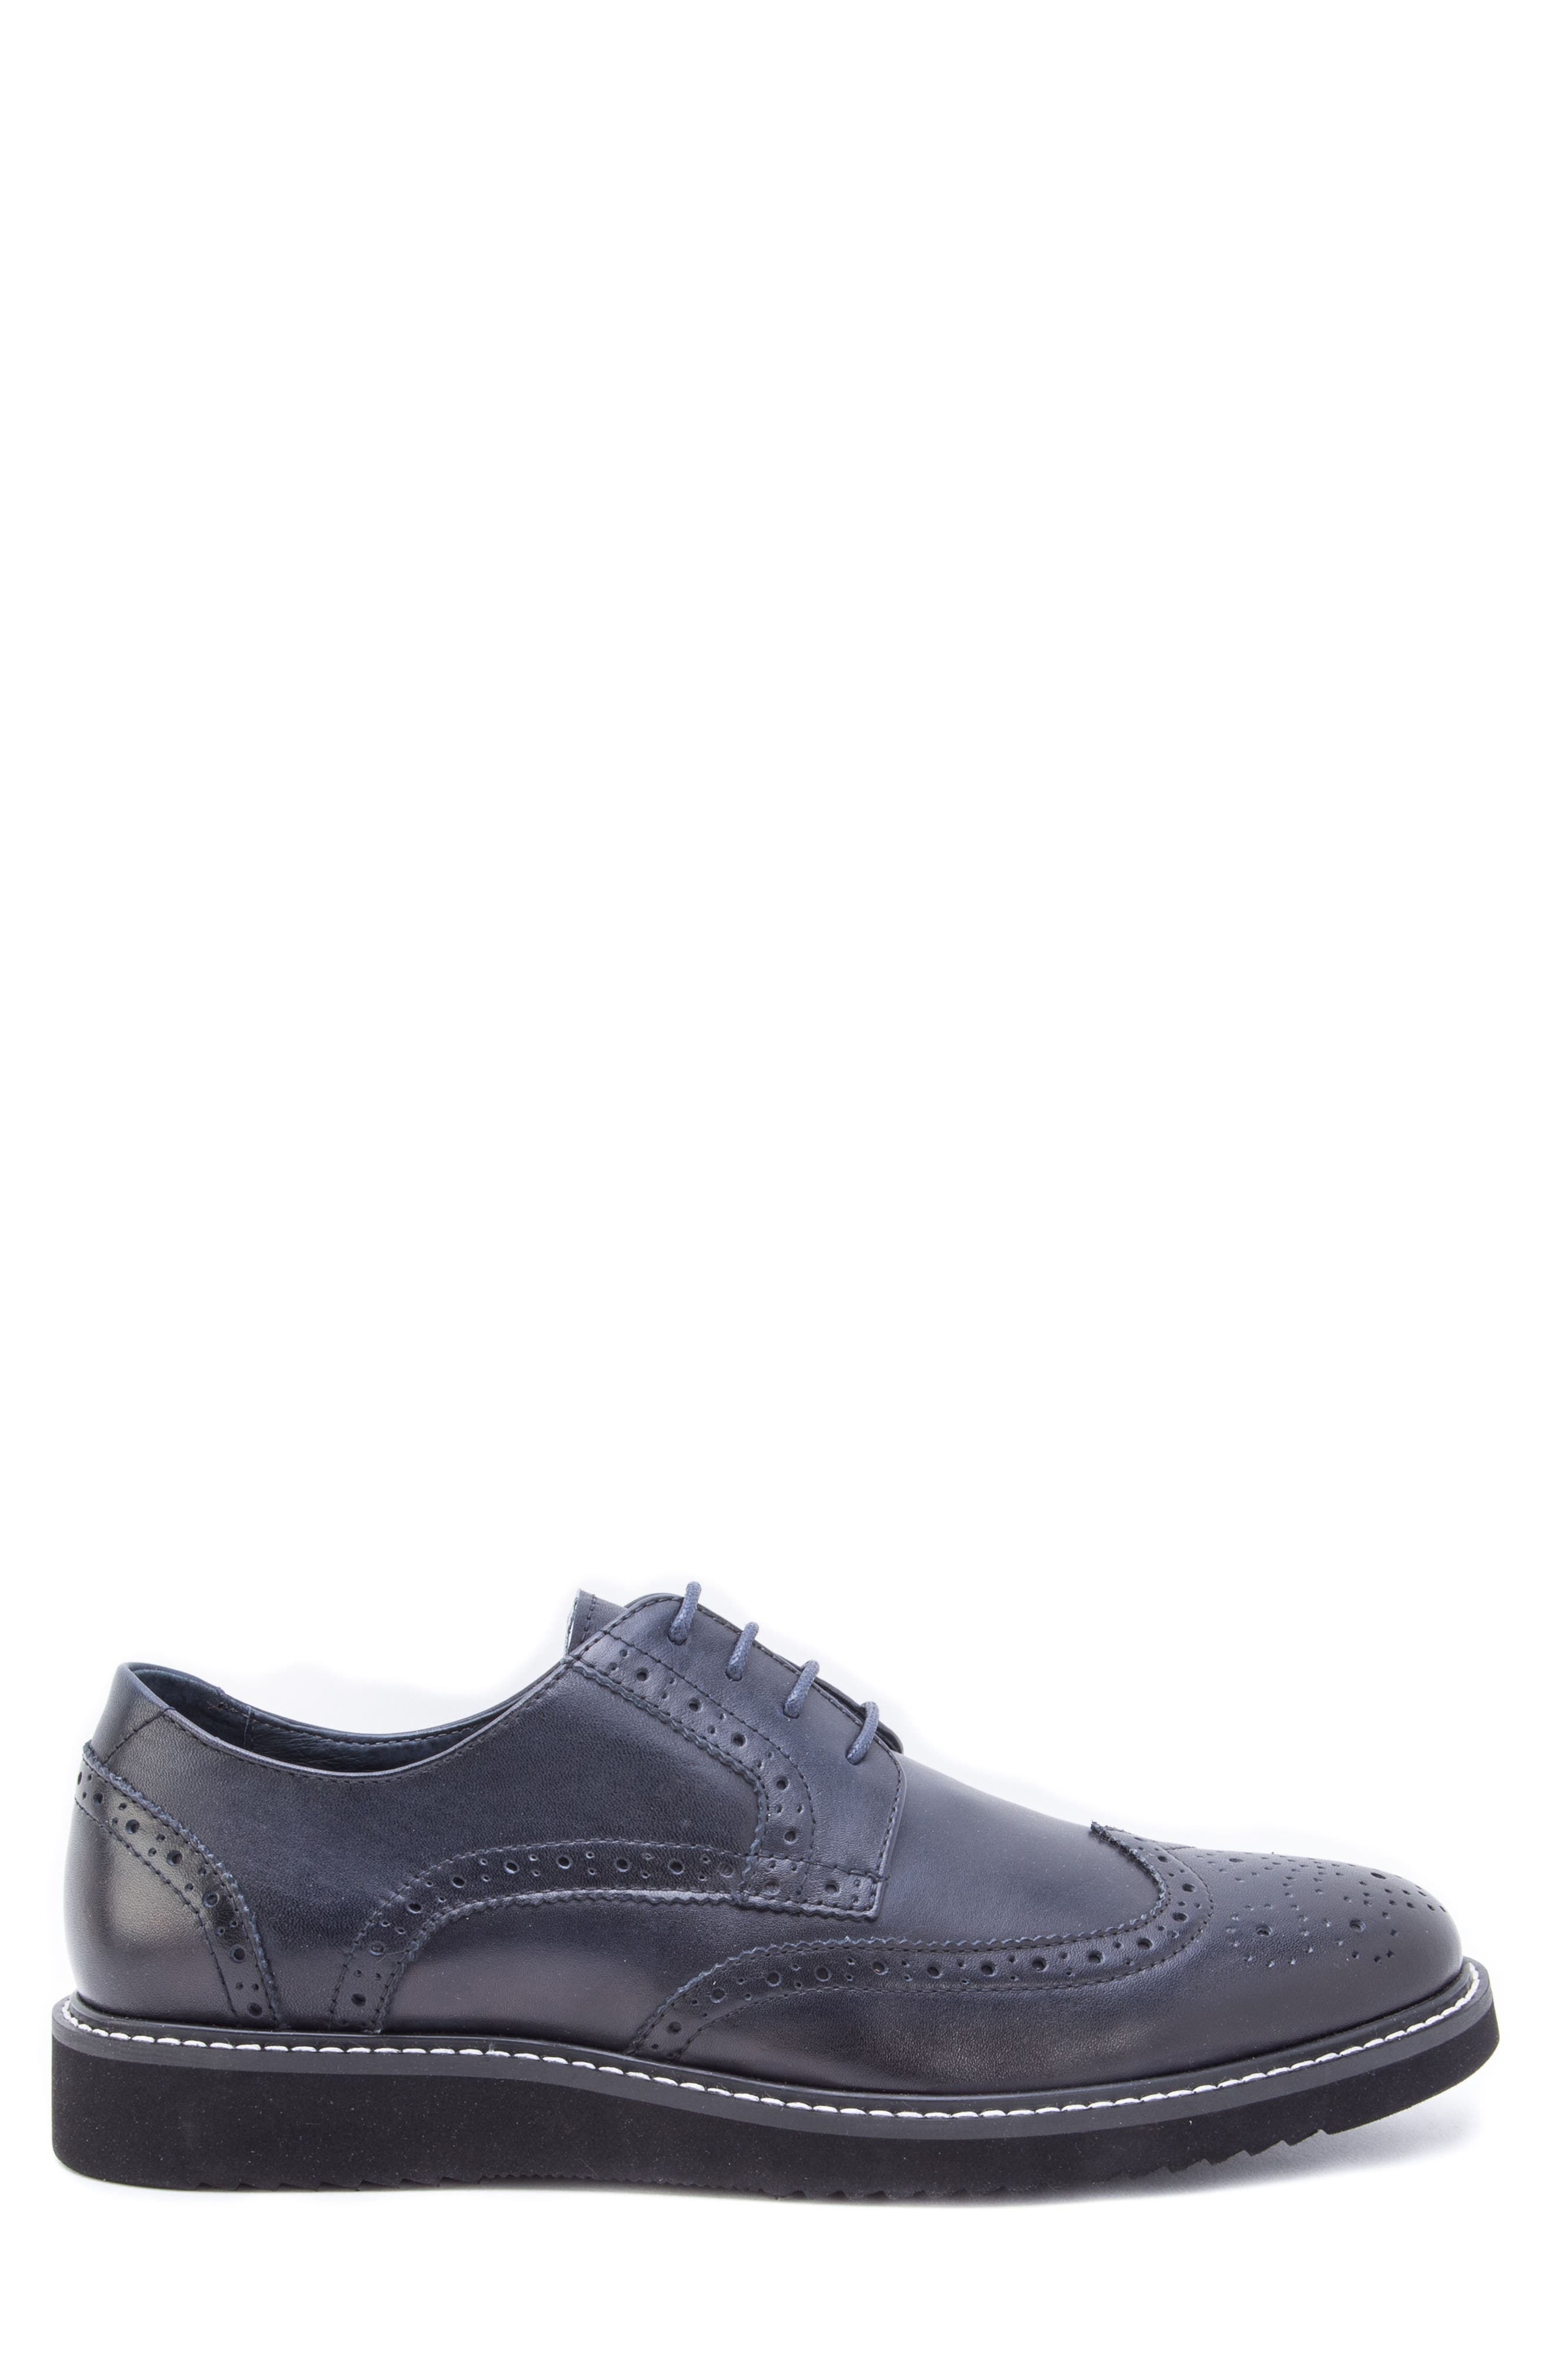 Siena Wingtip Derby,                             Alternate thumbnail 3, color,                             NAVY LEATHER